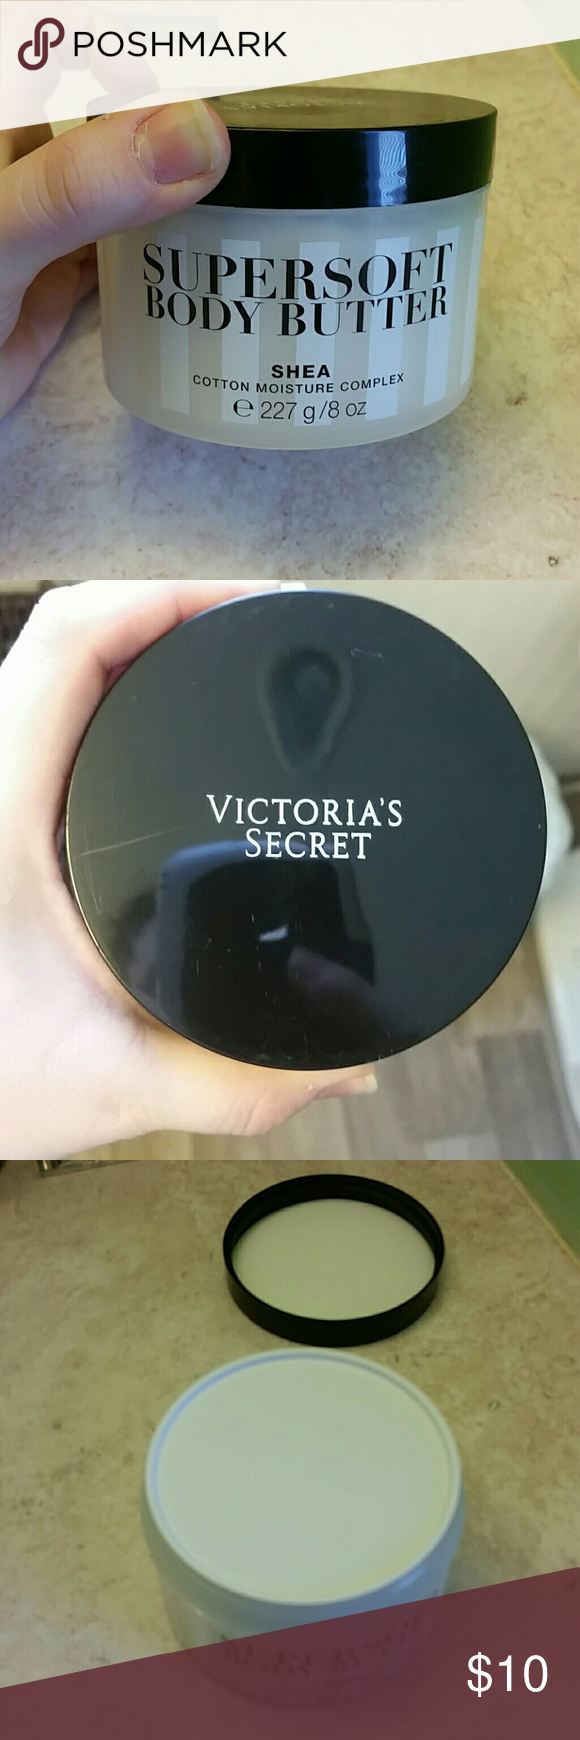 Body Butter It's super soft body butter from Victoria Secret very very awesome stuff never opened brand new PINK Victoria's Secret Other